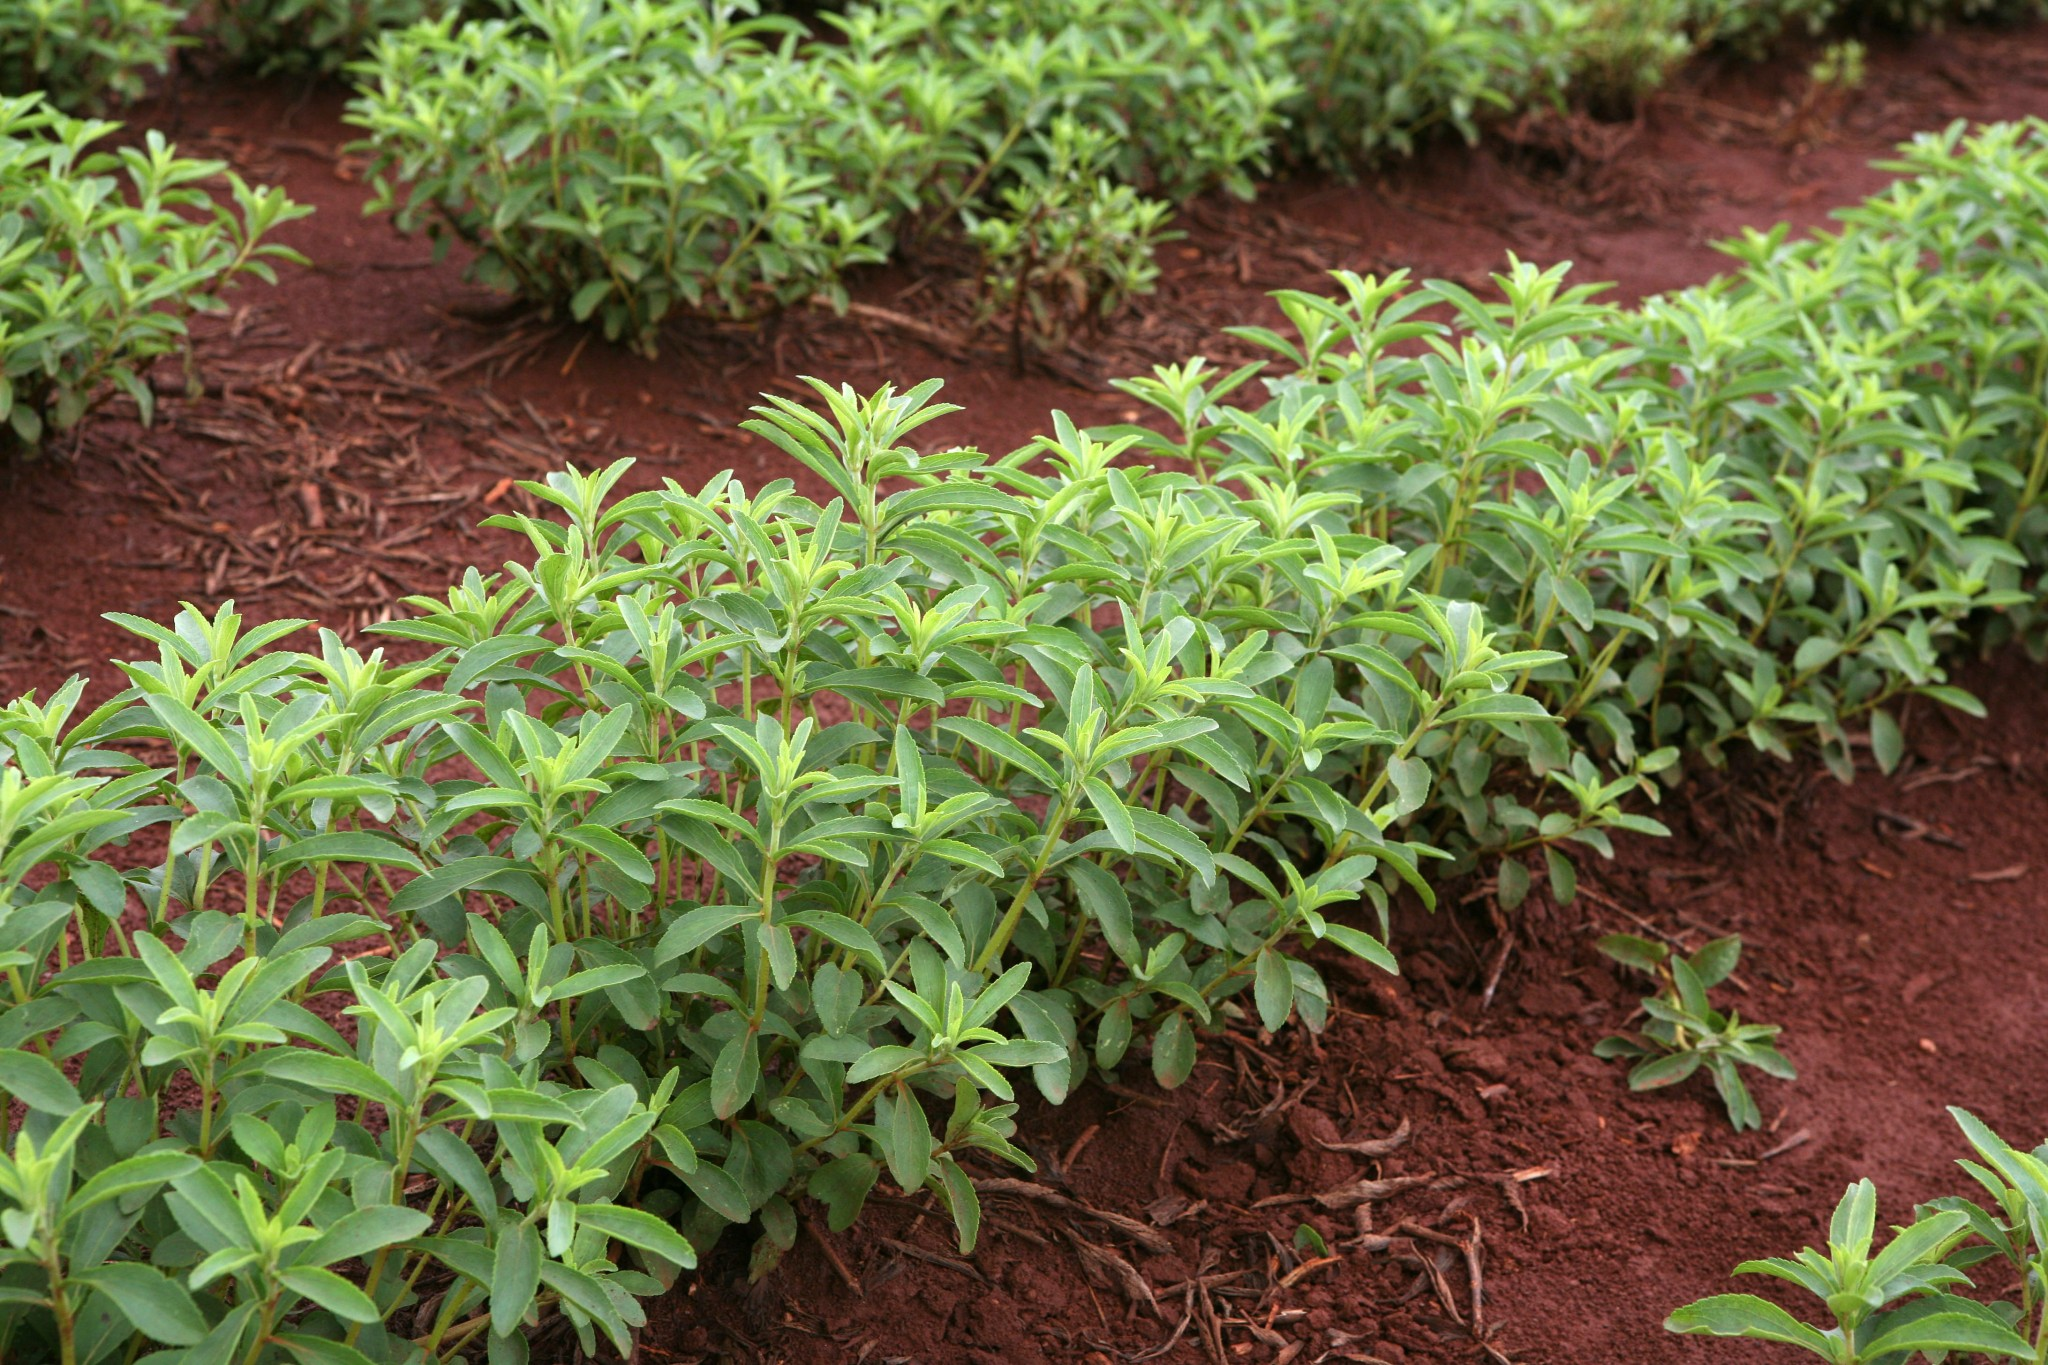 Stevia plants. Image courtesy of Natvia